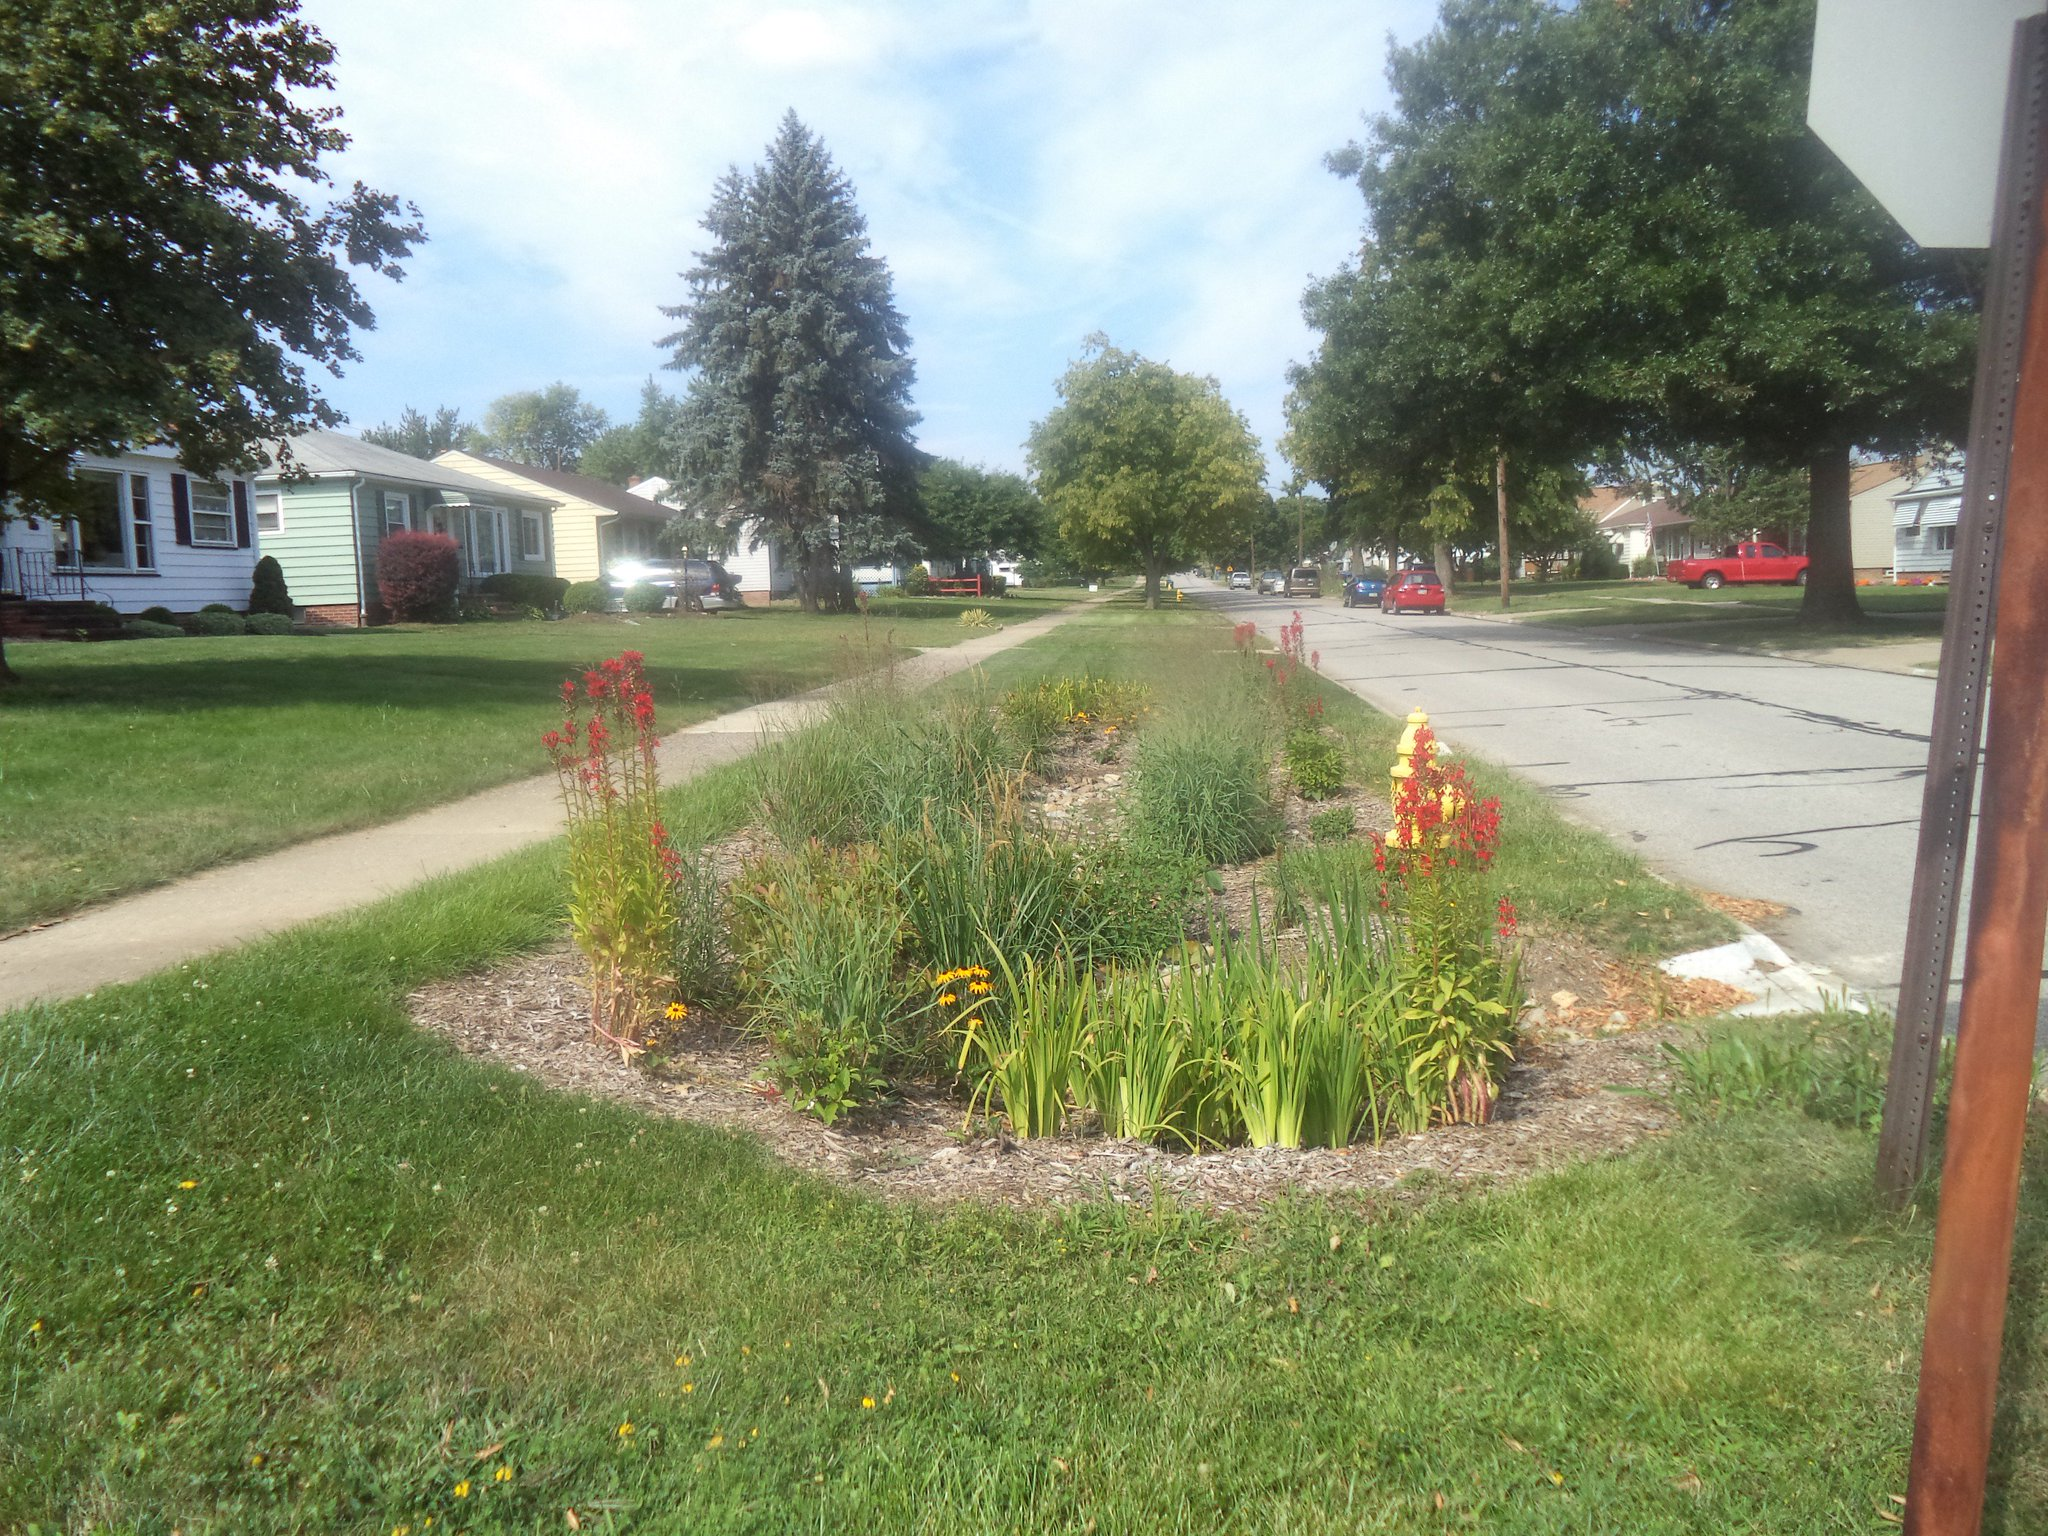 My personal favorite tool for managing #stormwater is a bioretention cell (a fancy rain garden) to slow down & soak up runoff. #spottheSCM https://t.co/6UgpGMozej